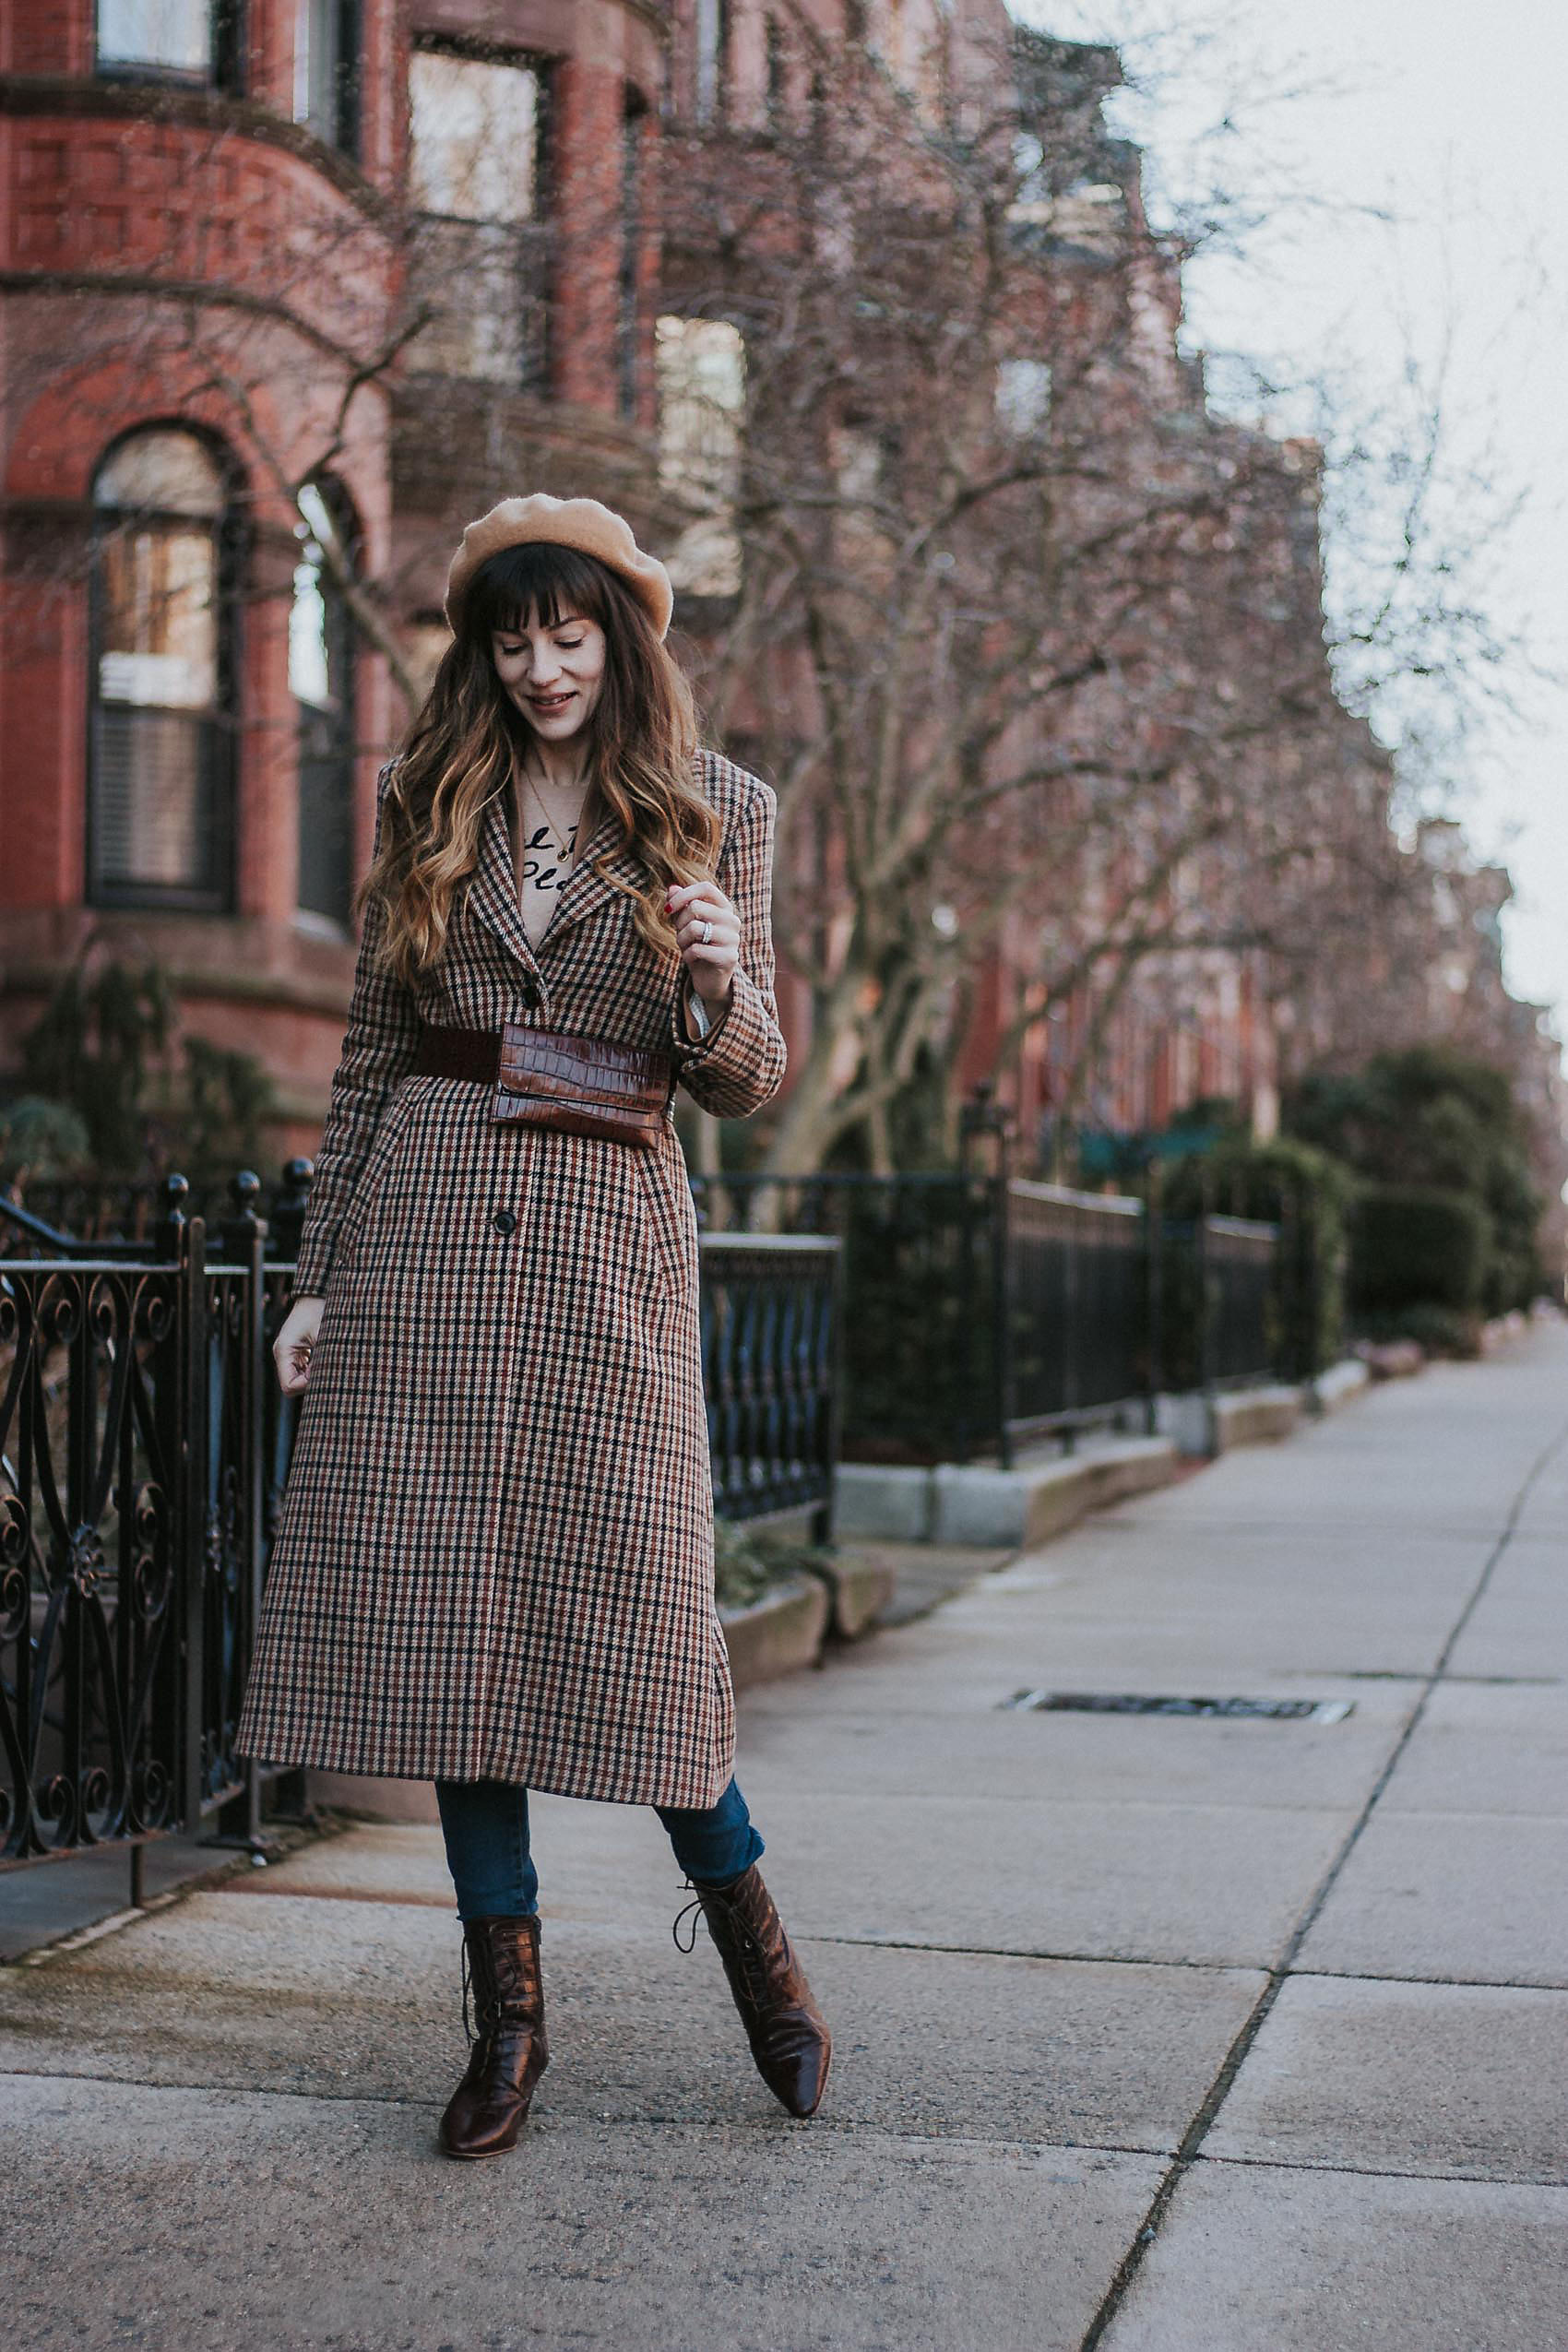 Neutral Layered Winter Outfit, How to Dress in Layers in Winter